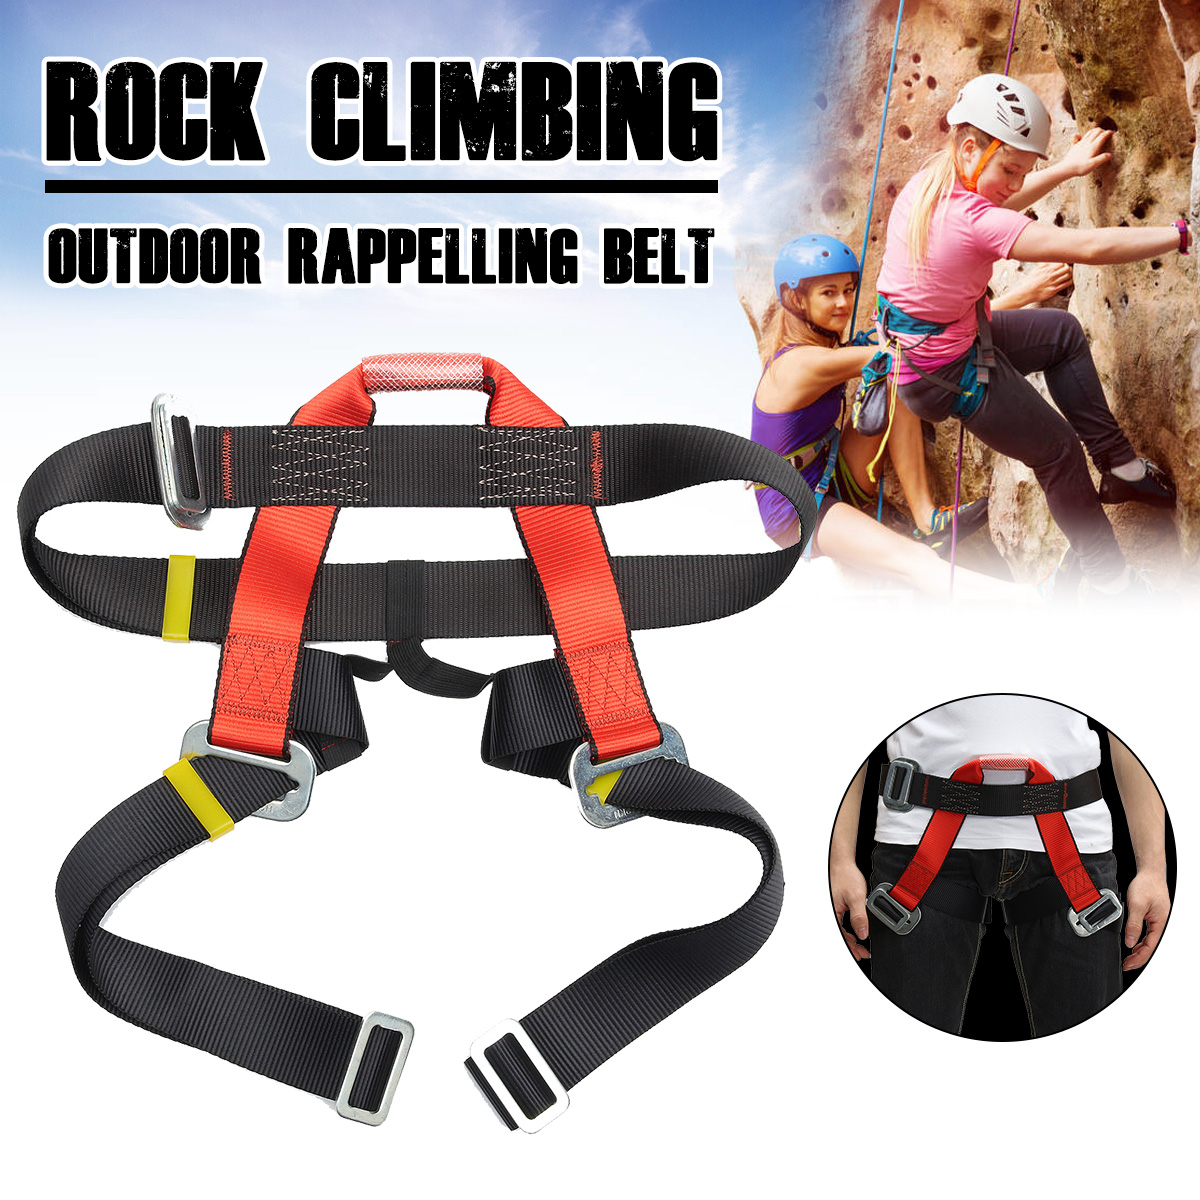 Outdoor Climbing Harness Safety Belt Half Body Protecting For Rock Climbing Downhill Harnesses Rappel Belt Climbing Equipment